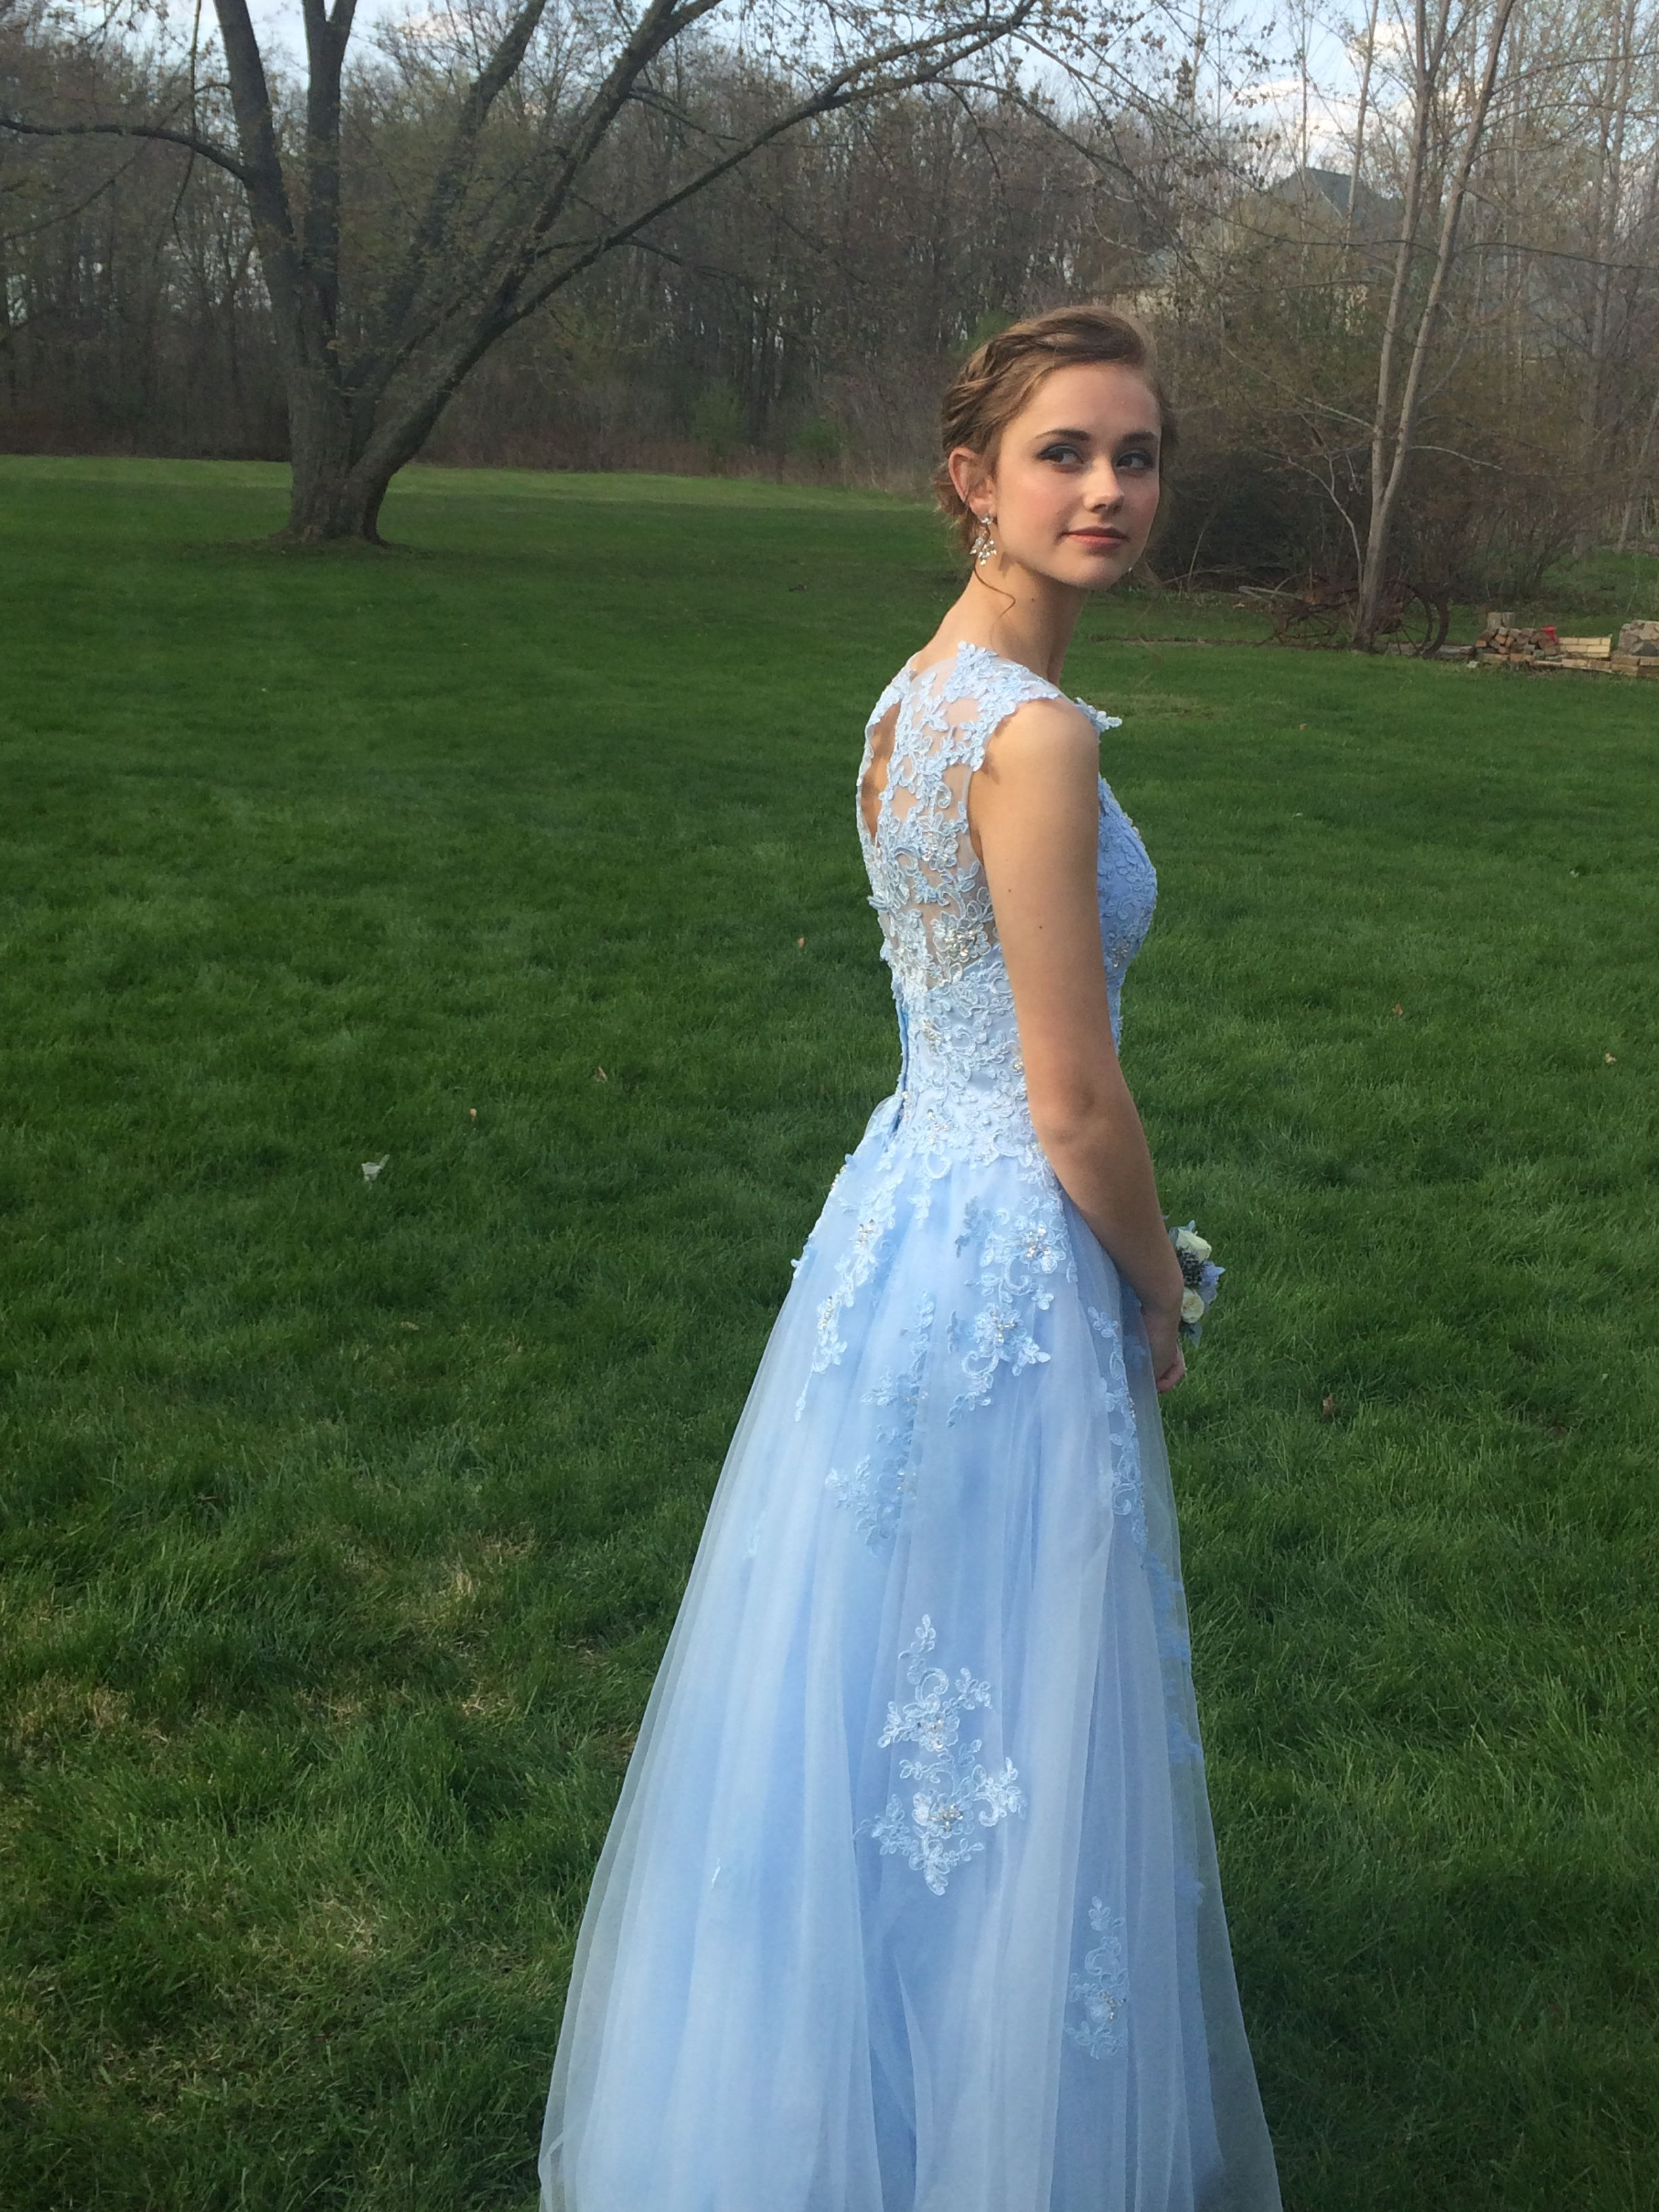 4ad9c9f5d jjshouse sky blue lace prom dress with added appliqués #prom #lace #skyblue  #jjshouse